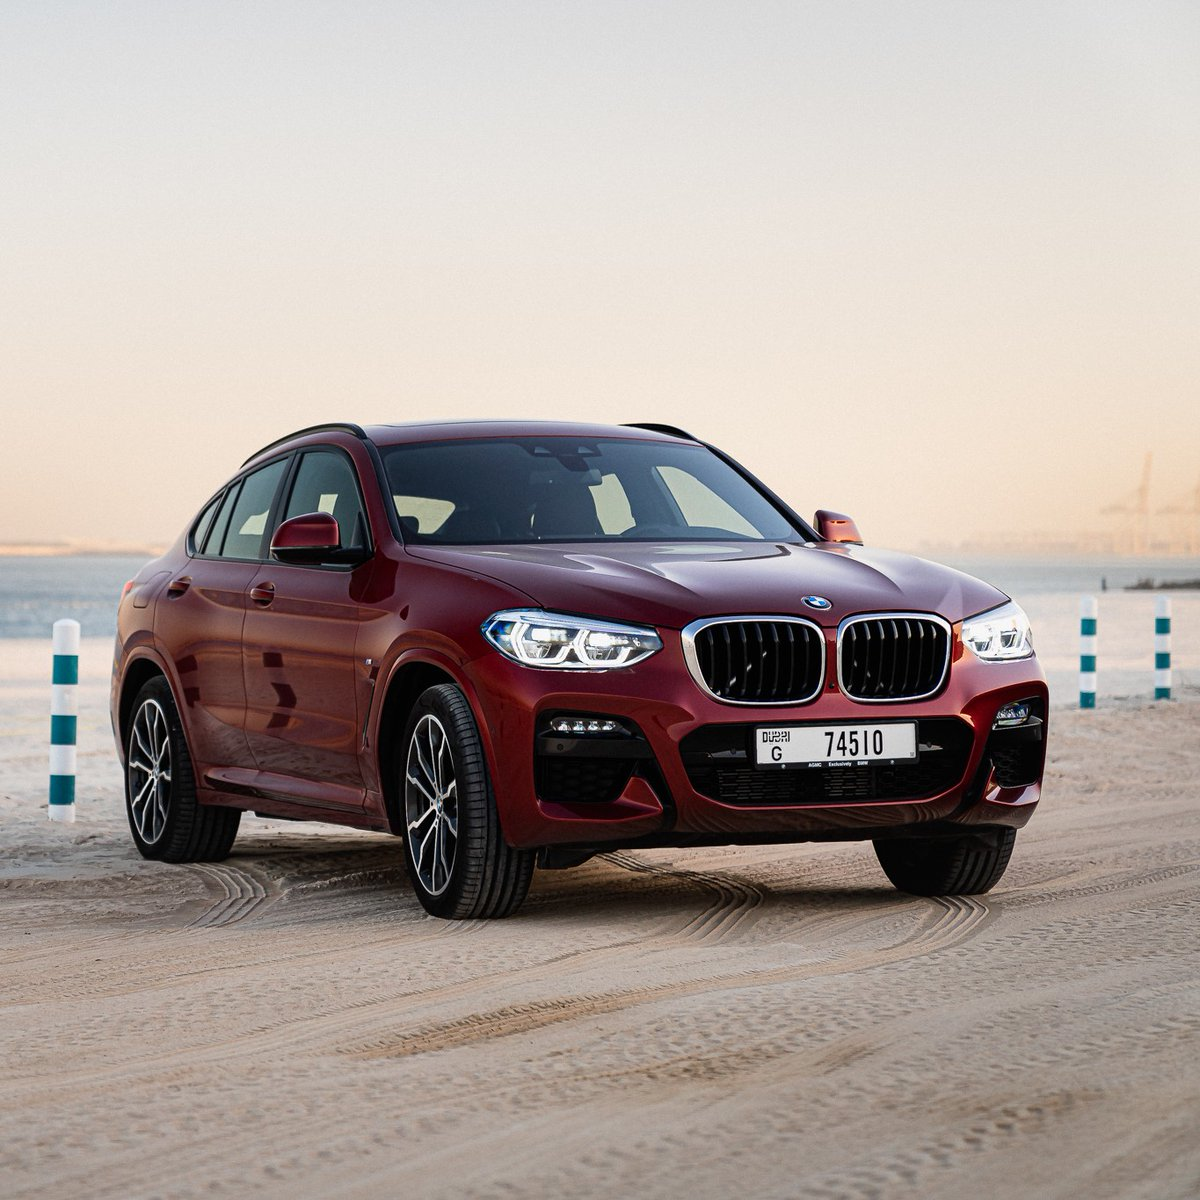 The X4 is designed for unfiltered adventures. Enjoy up to 0.99% finance rate and first year free insurance and registration.  #BMWX4 #BMWXDrive30i #BMWAGMC #BMWuae #BMW #dubai #mydubai #uae